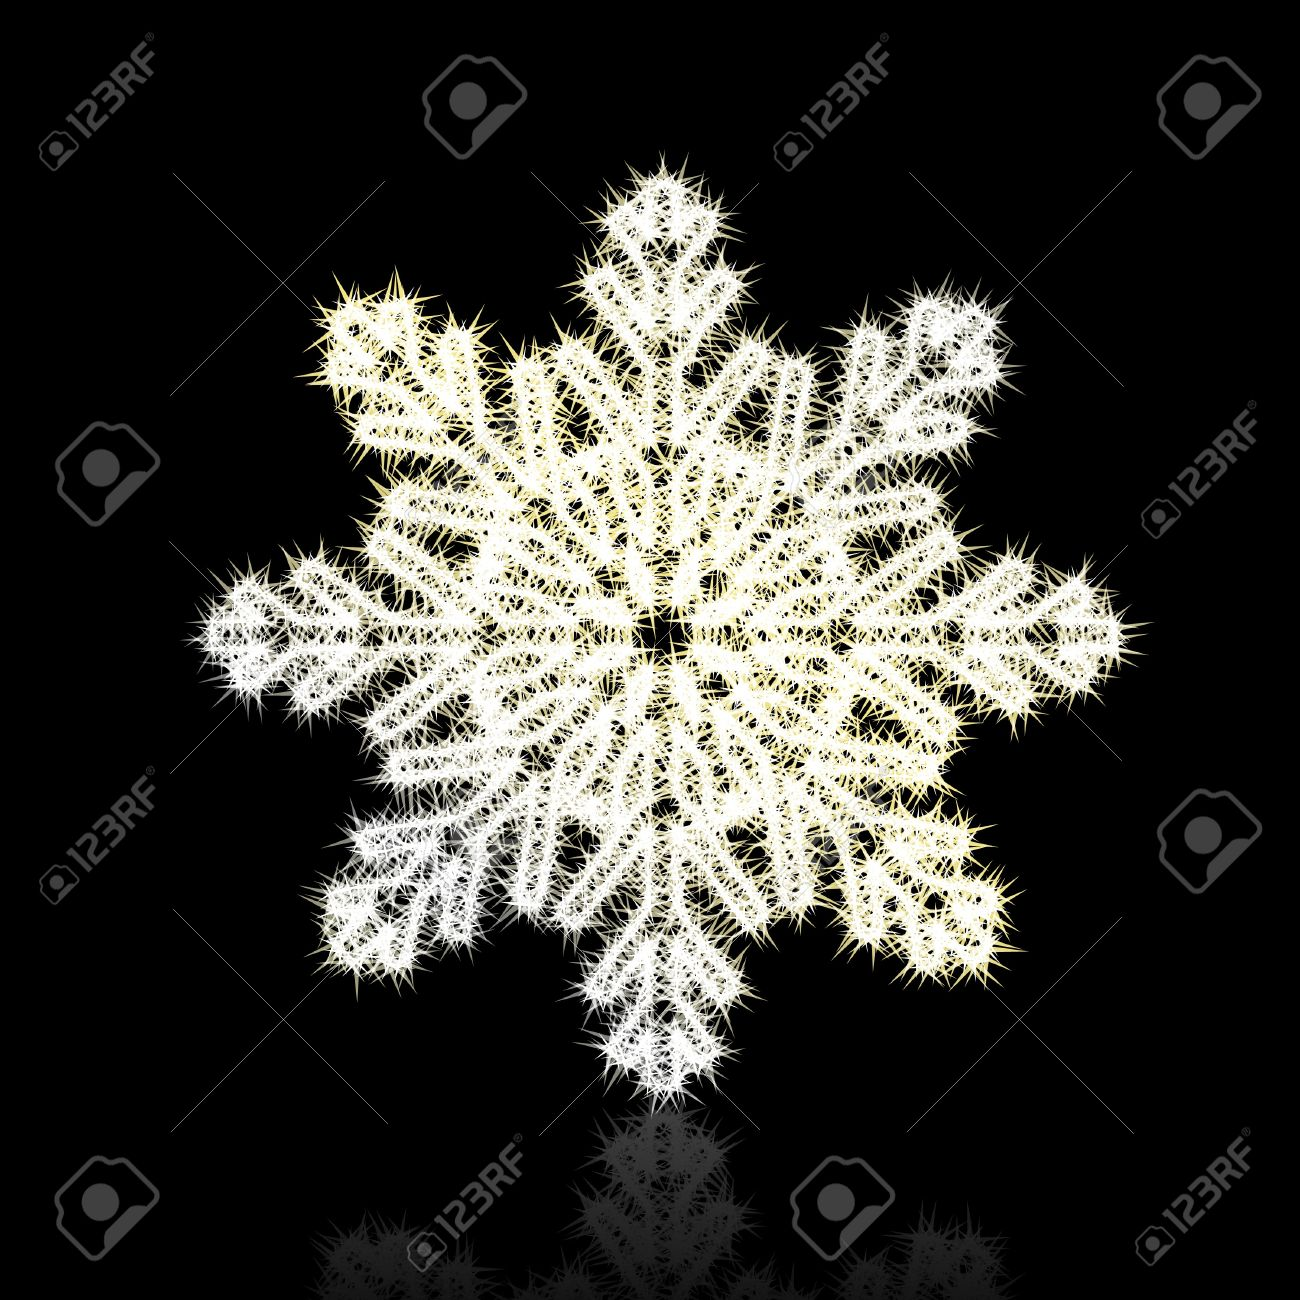 Christmas snowflake on black background. Stock Vector - 8744612